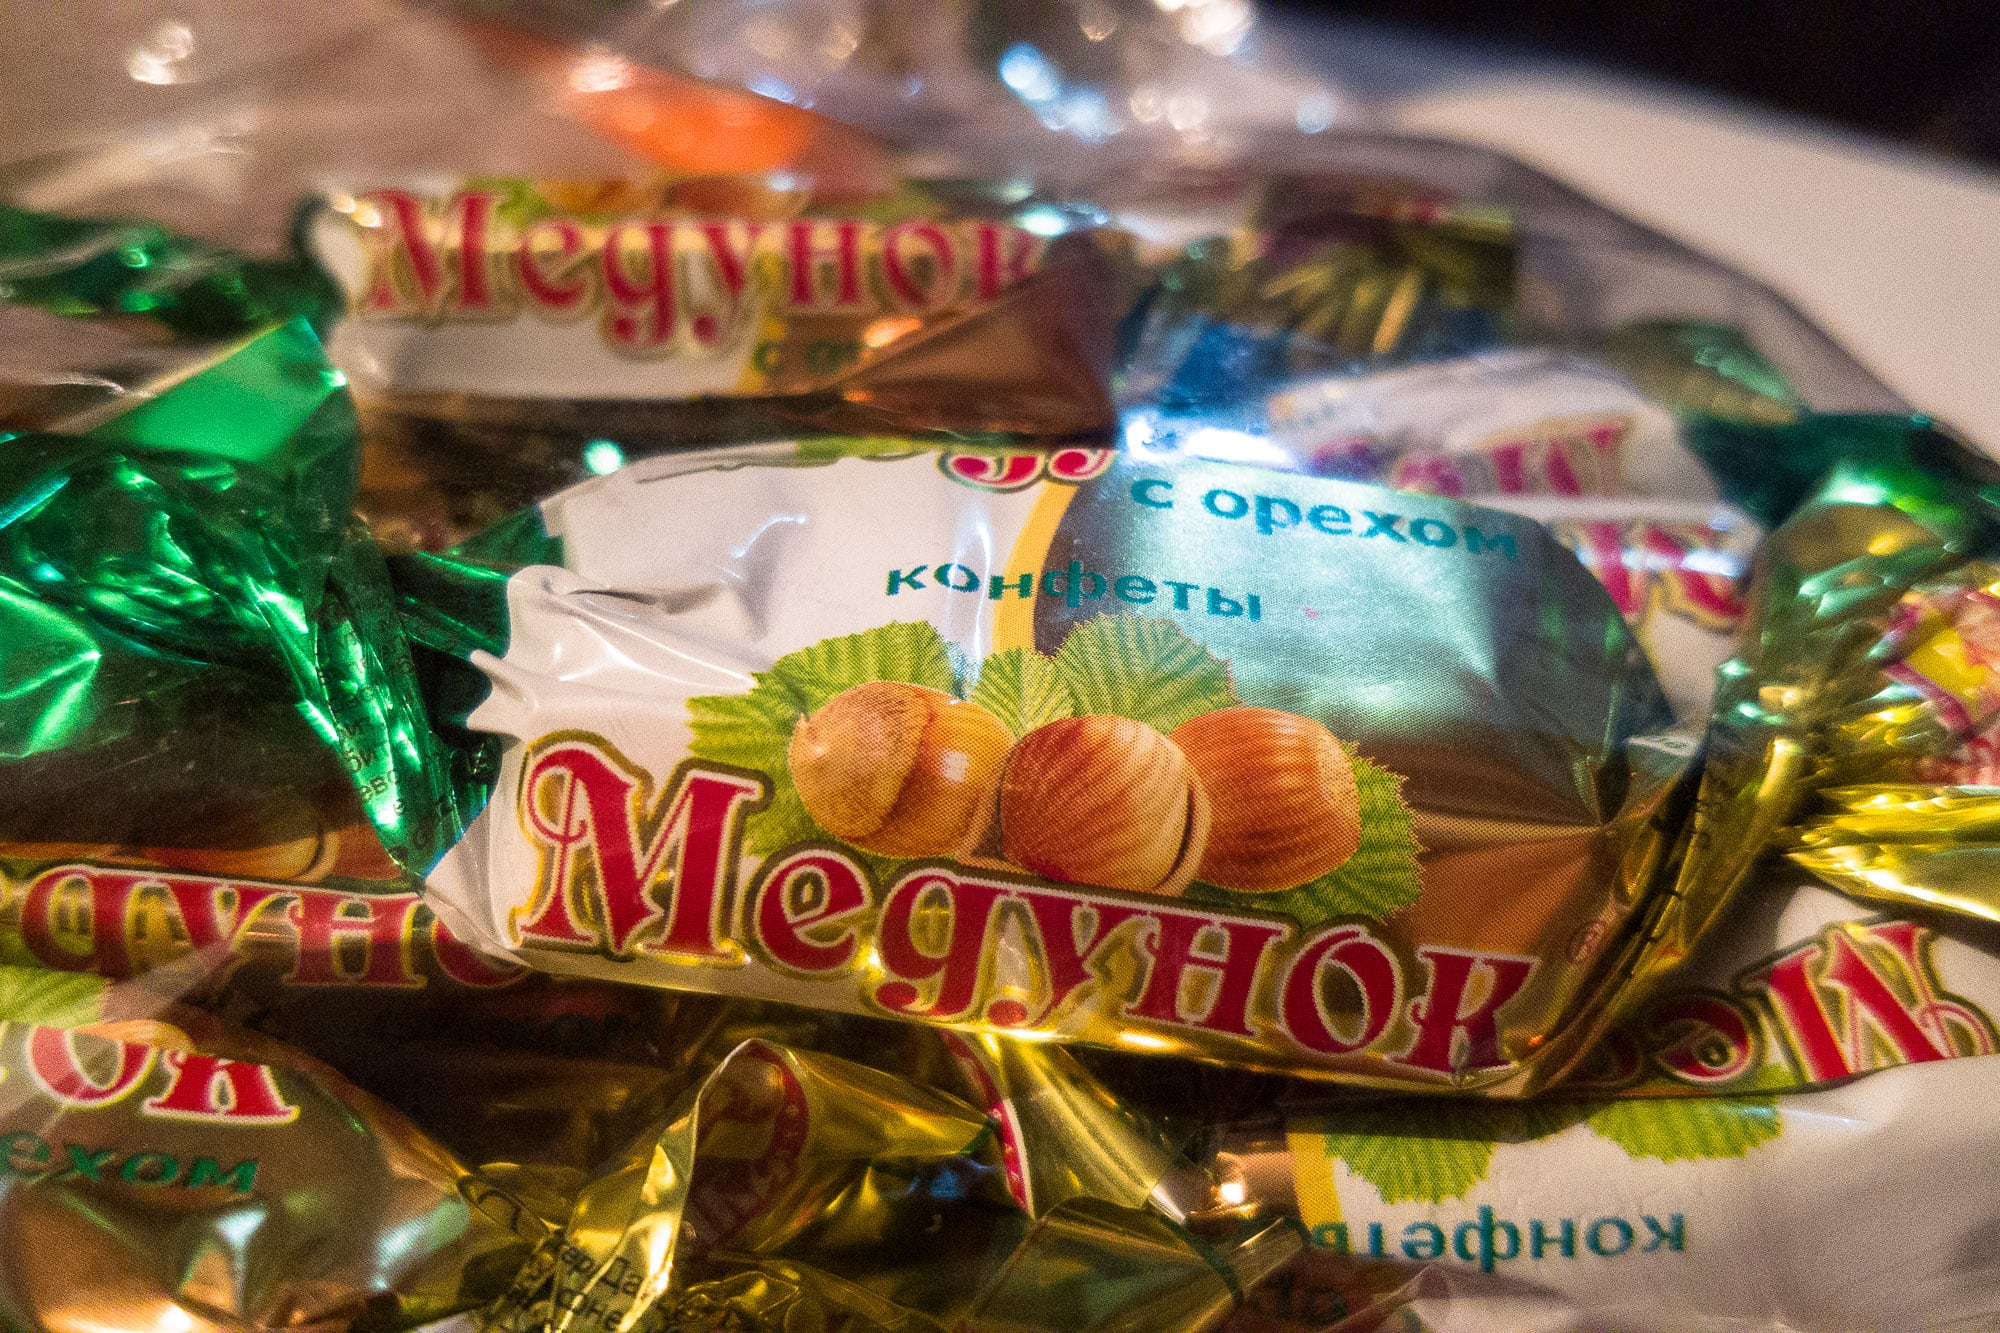 Medunok, the best candy